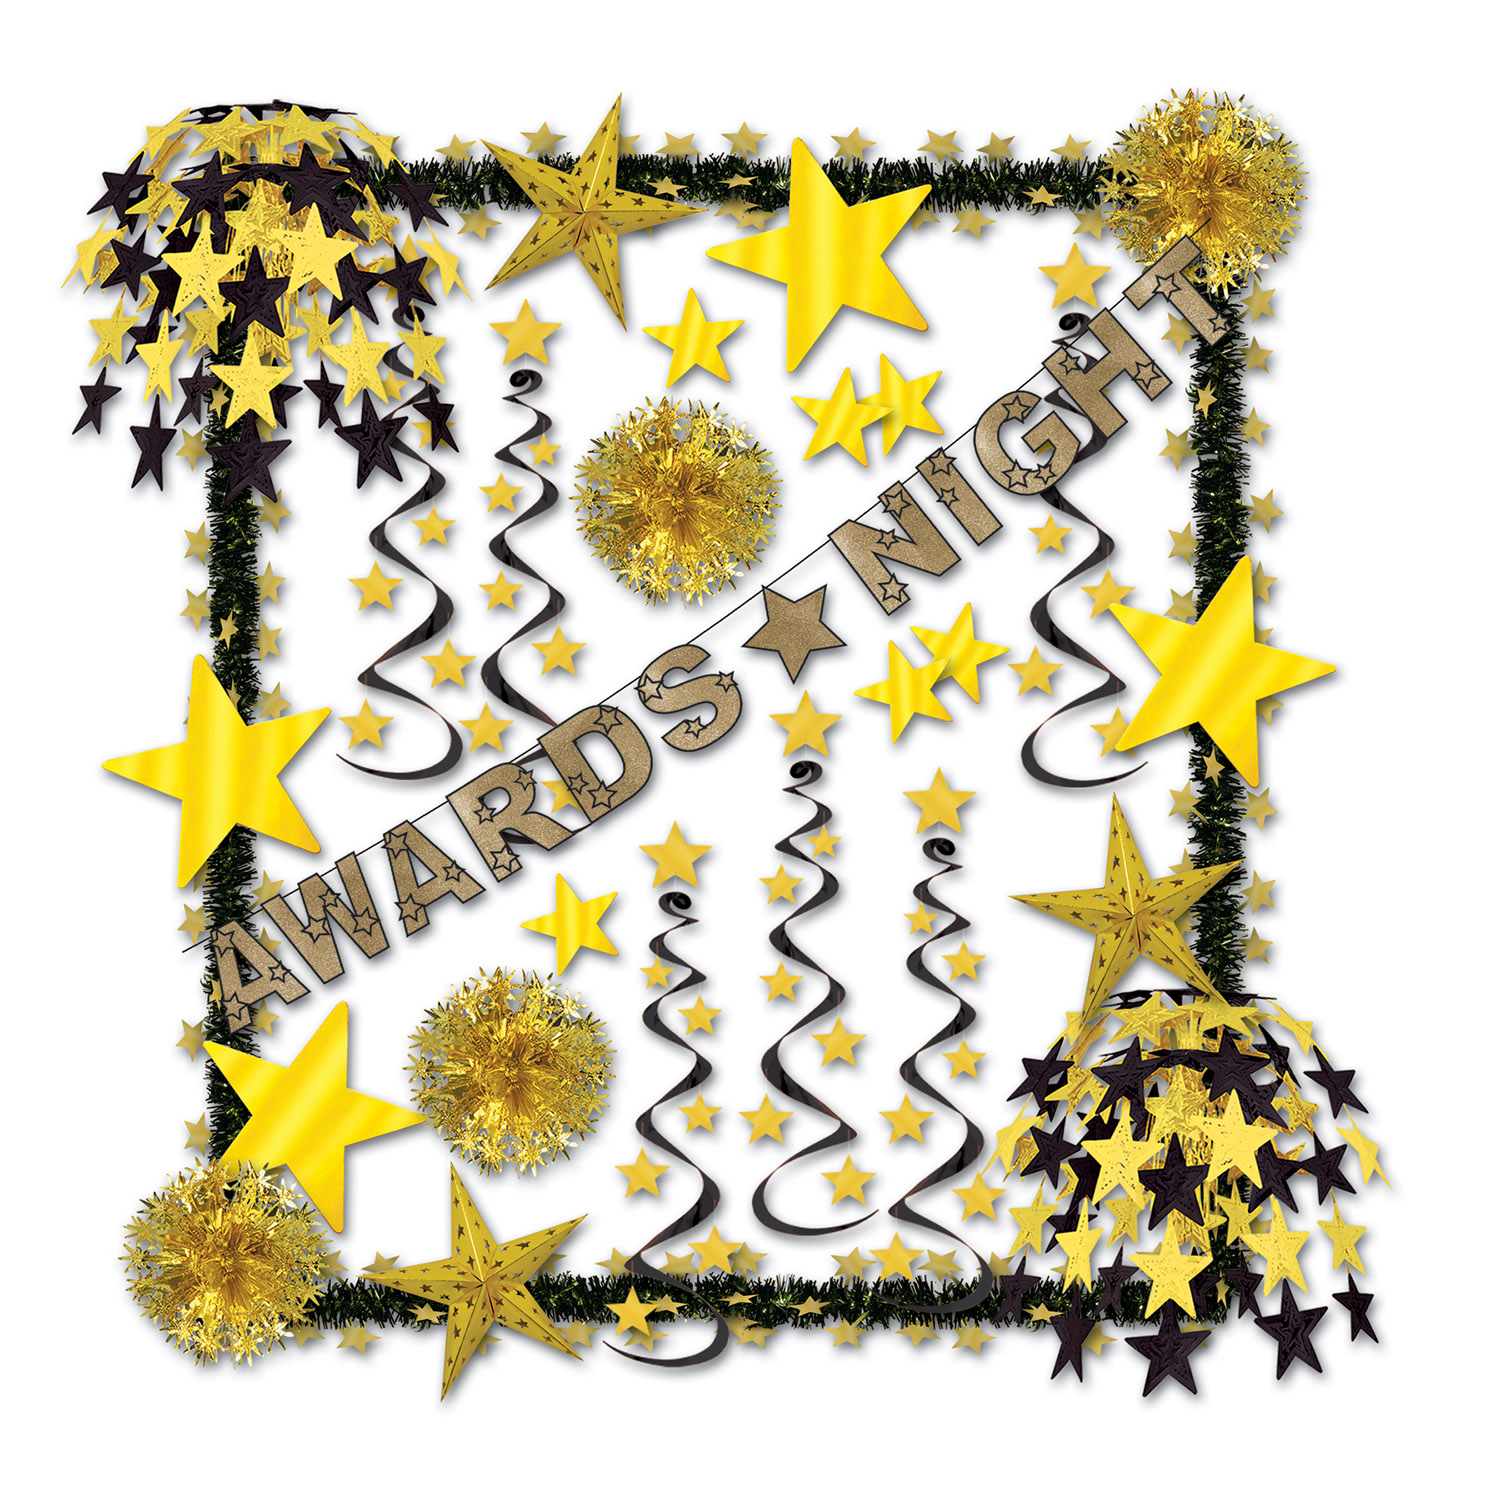 Awards Night Reflections Dec Kit  awards, night, reflections, decoration, kit, trim, garlands, banners, stars, whirls, tissue, balls, Hollywood, gold, black, party, pack, event,